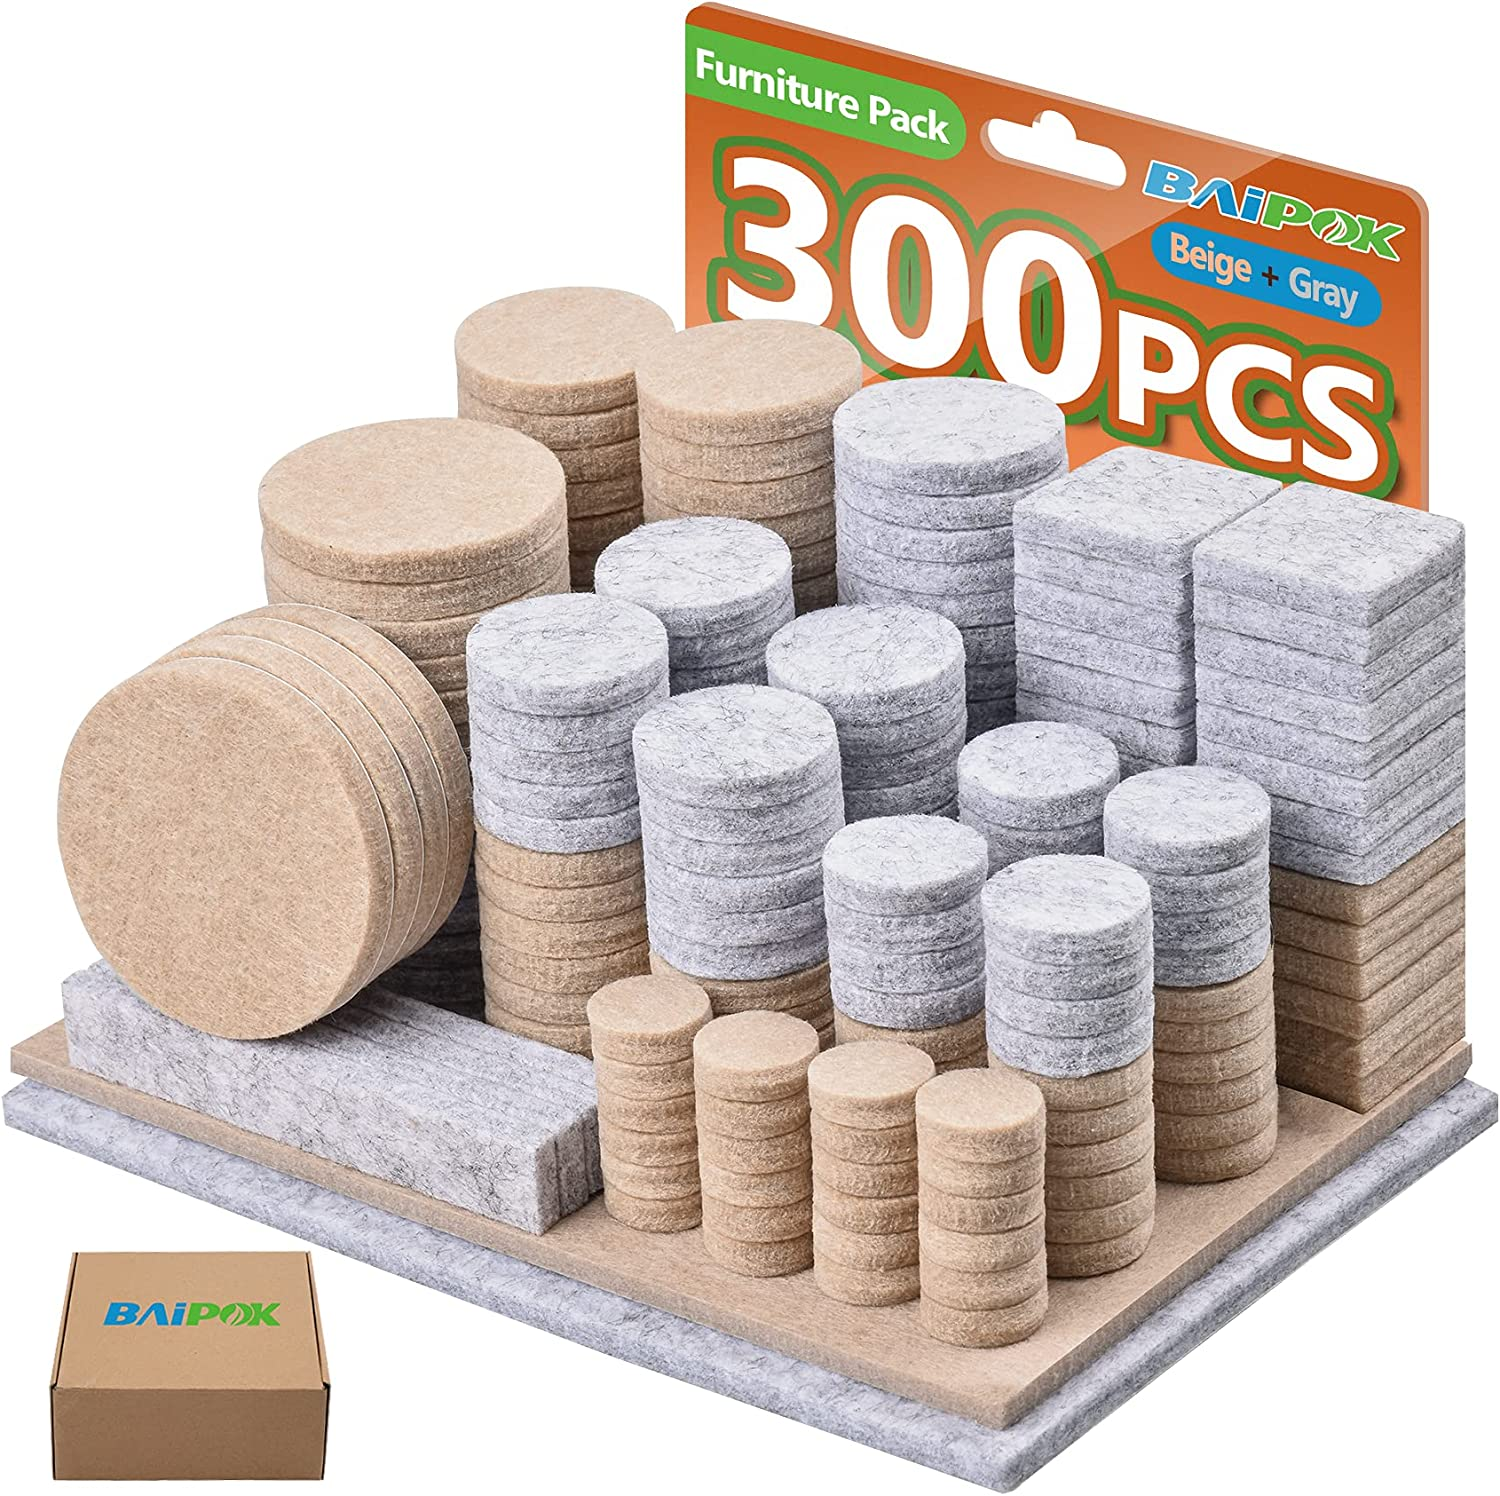 Felt Pads 300 Pcs Premium Furniture Pads Two Colors (Beige 130 + Gray 110), Various Sizes Self Adhesive Chair Leg Pads, Anti Scratch Floor Protectors for Furniture Hard Floor with 60 Cabinet Bumpers